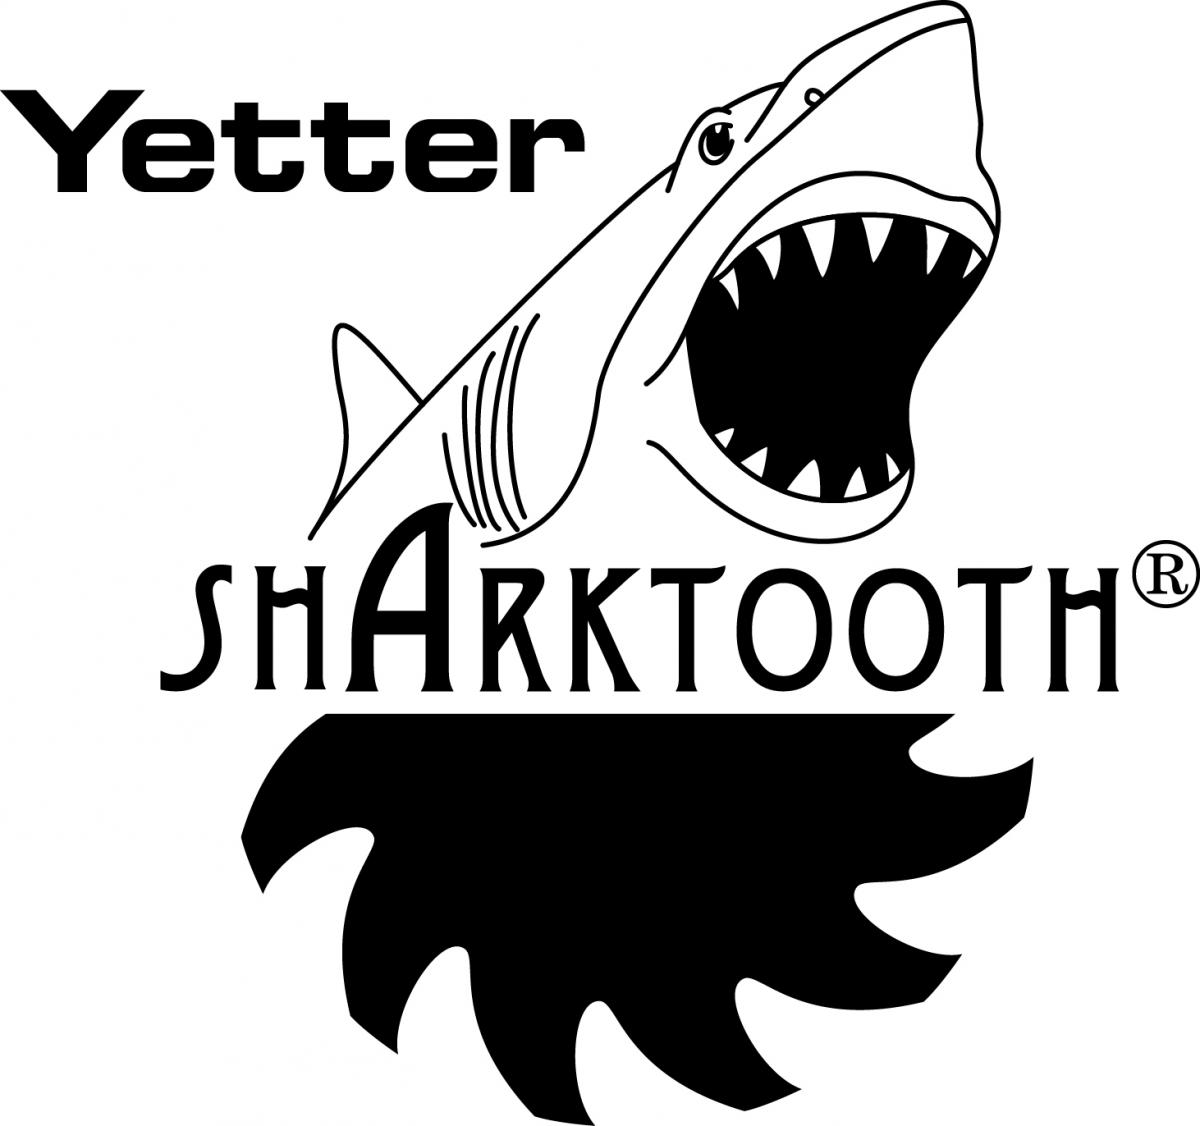 SharkTooth Wheel logo